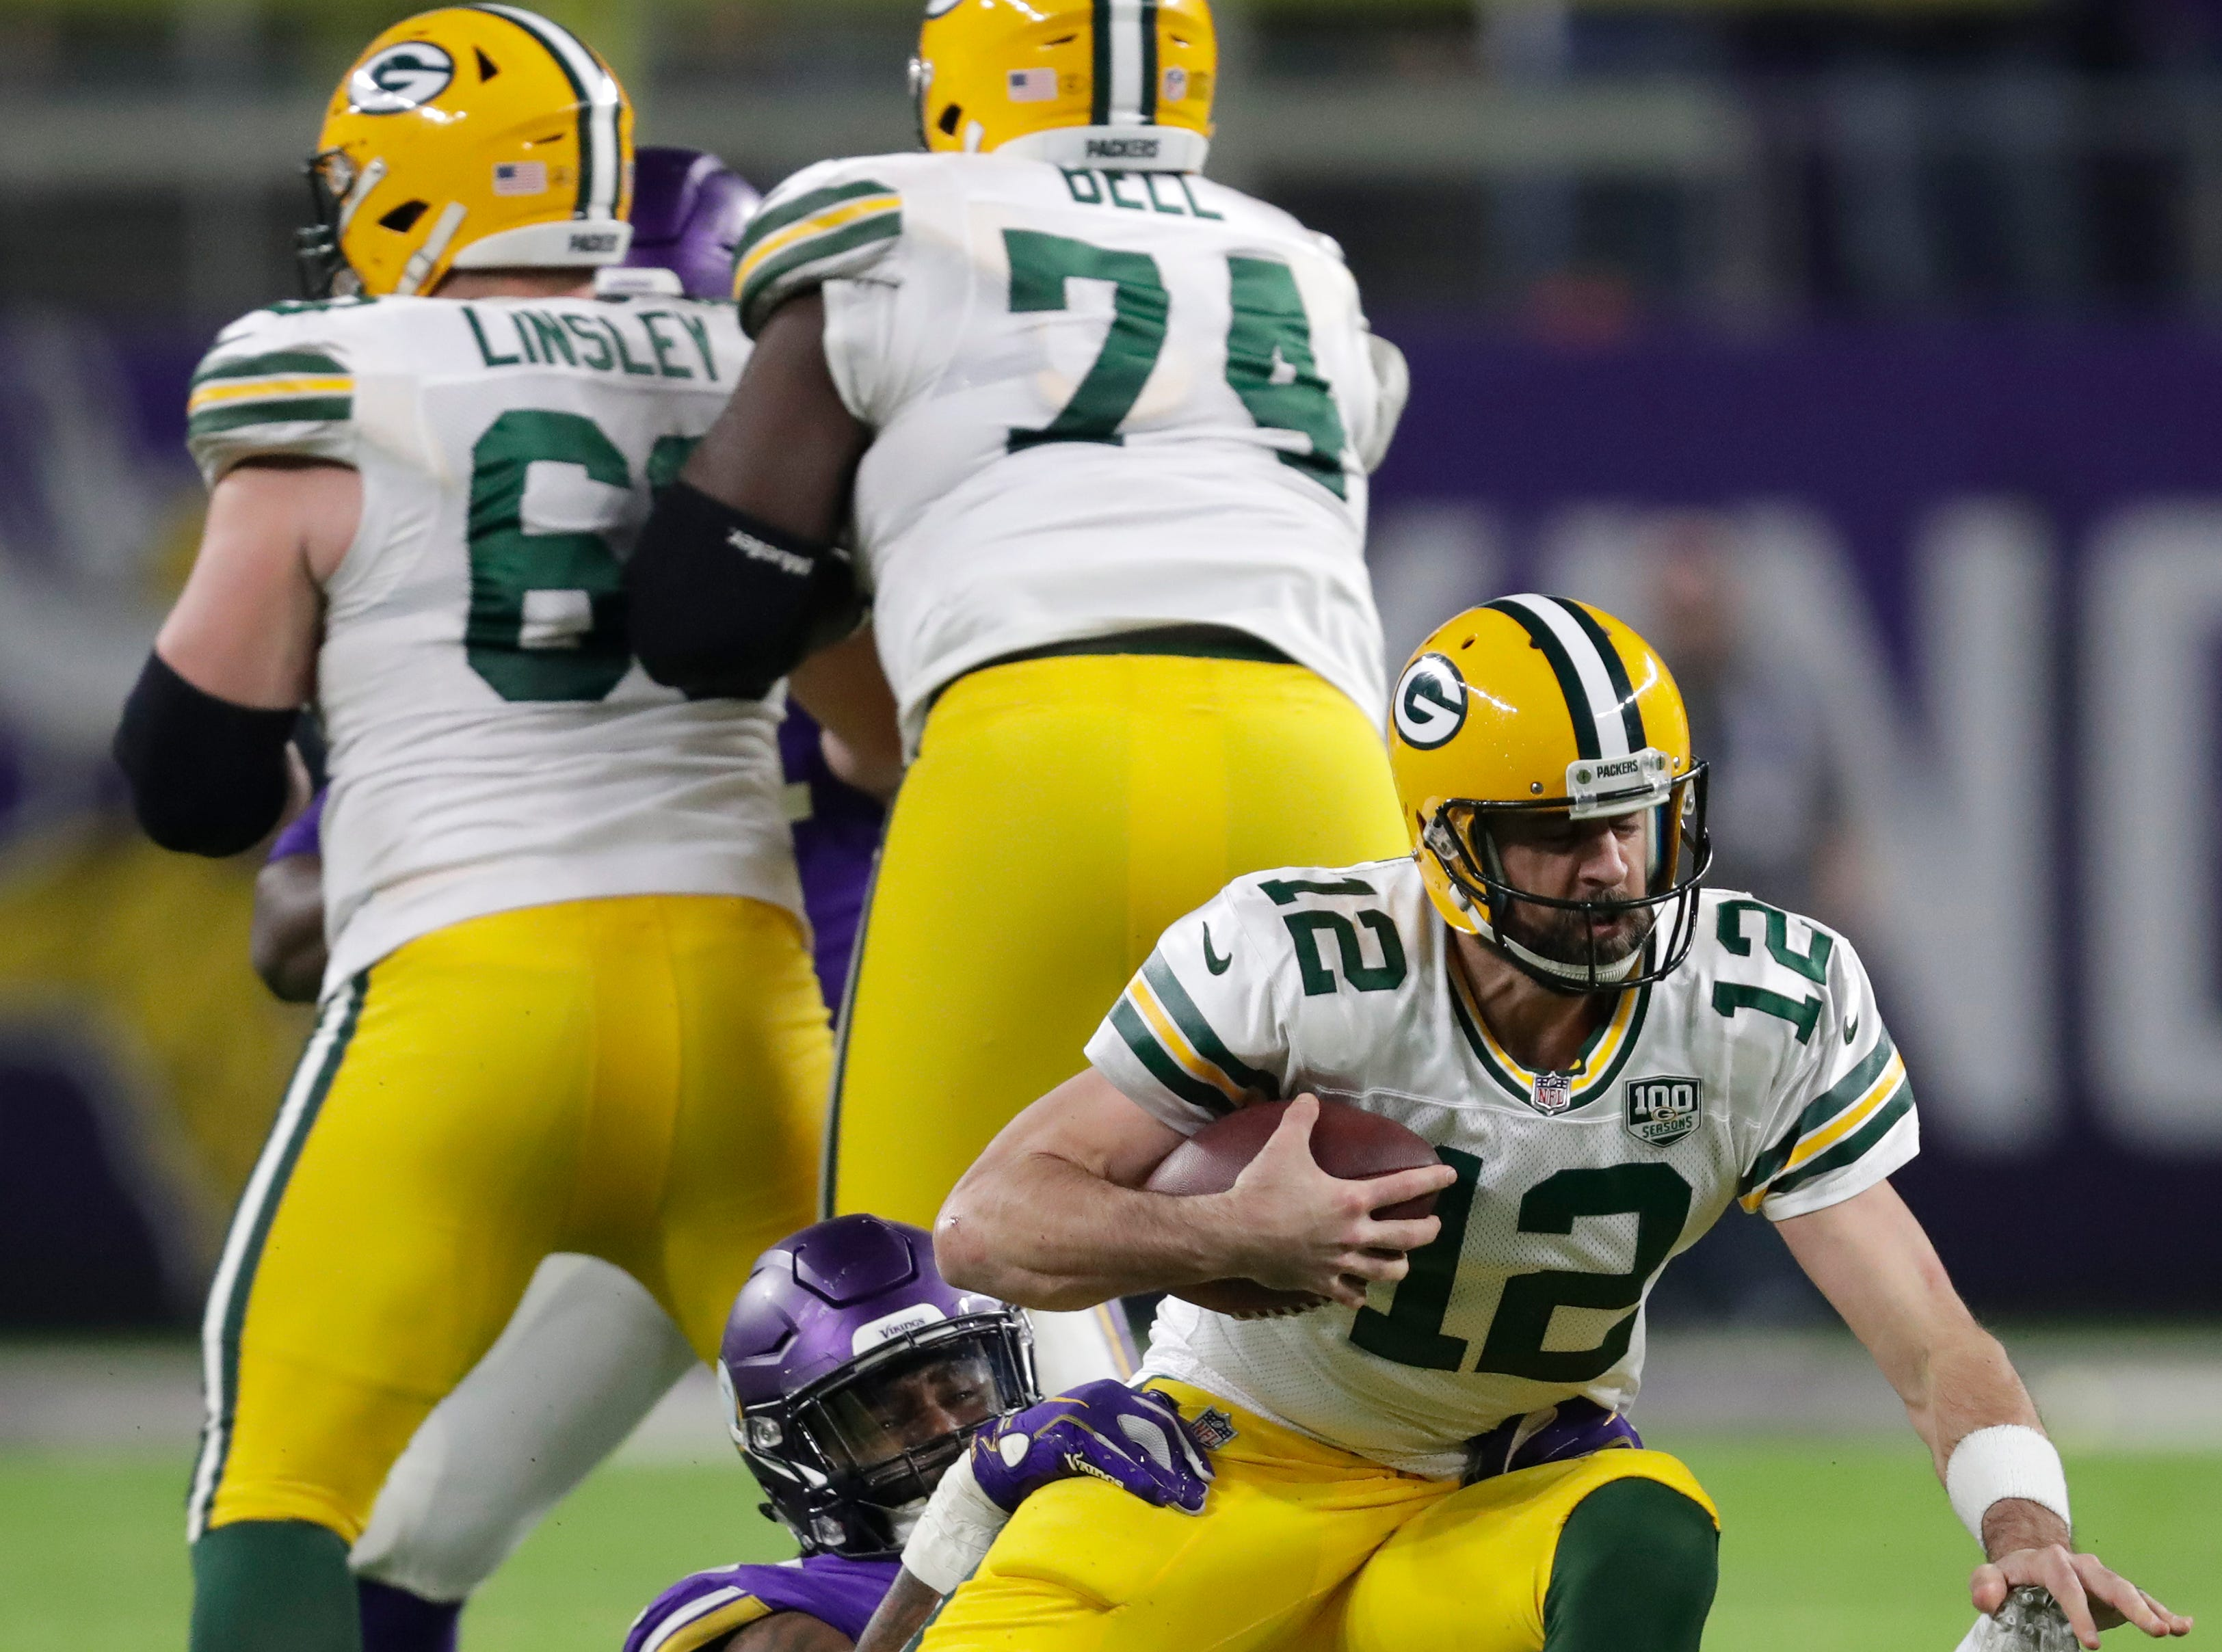 Green Bay Packers quarterback Aaron Rodgers (12) is sacked by Minnesota Vikings defensive tackle Sheldon Richardson (93) in the third quarter during their football game Sunday, November 25, 2018, at U.S. Bank Stadium in Minneapolis, Minn. 